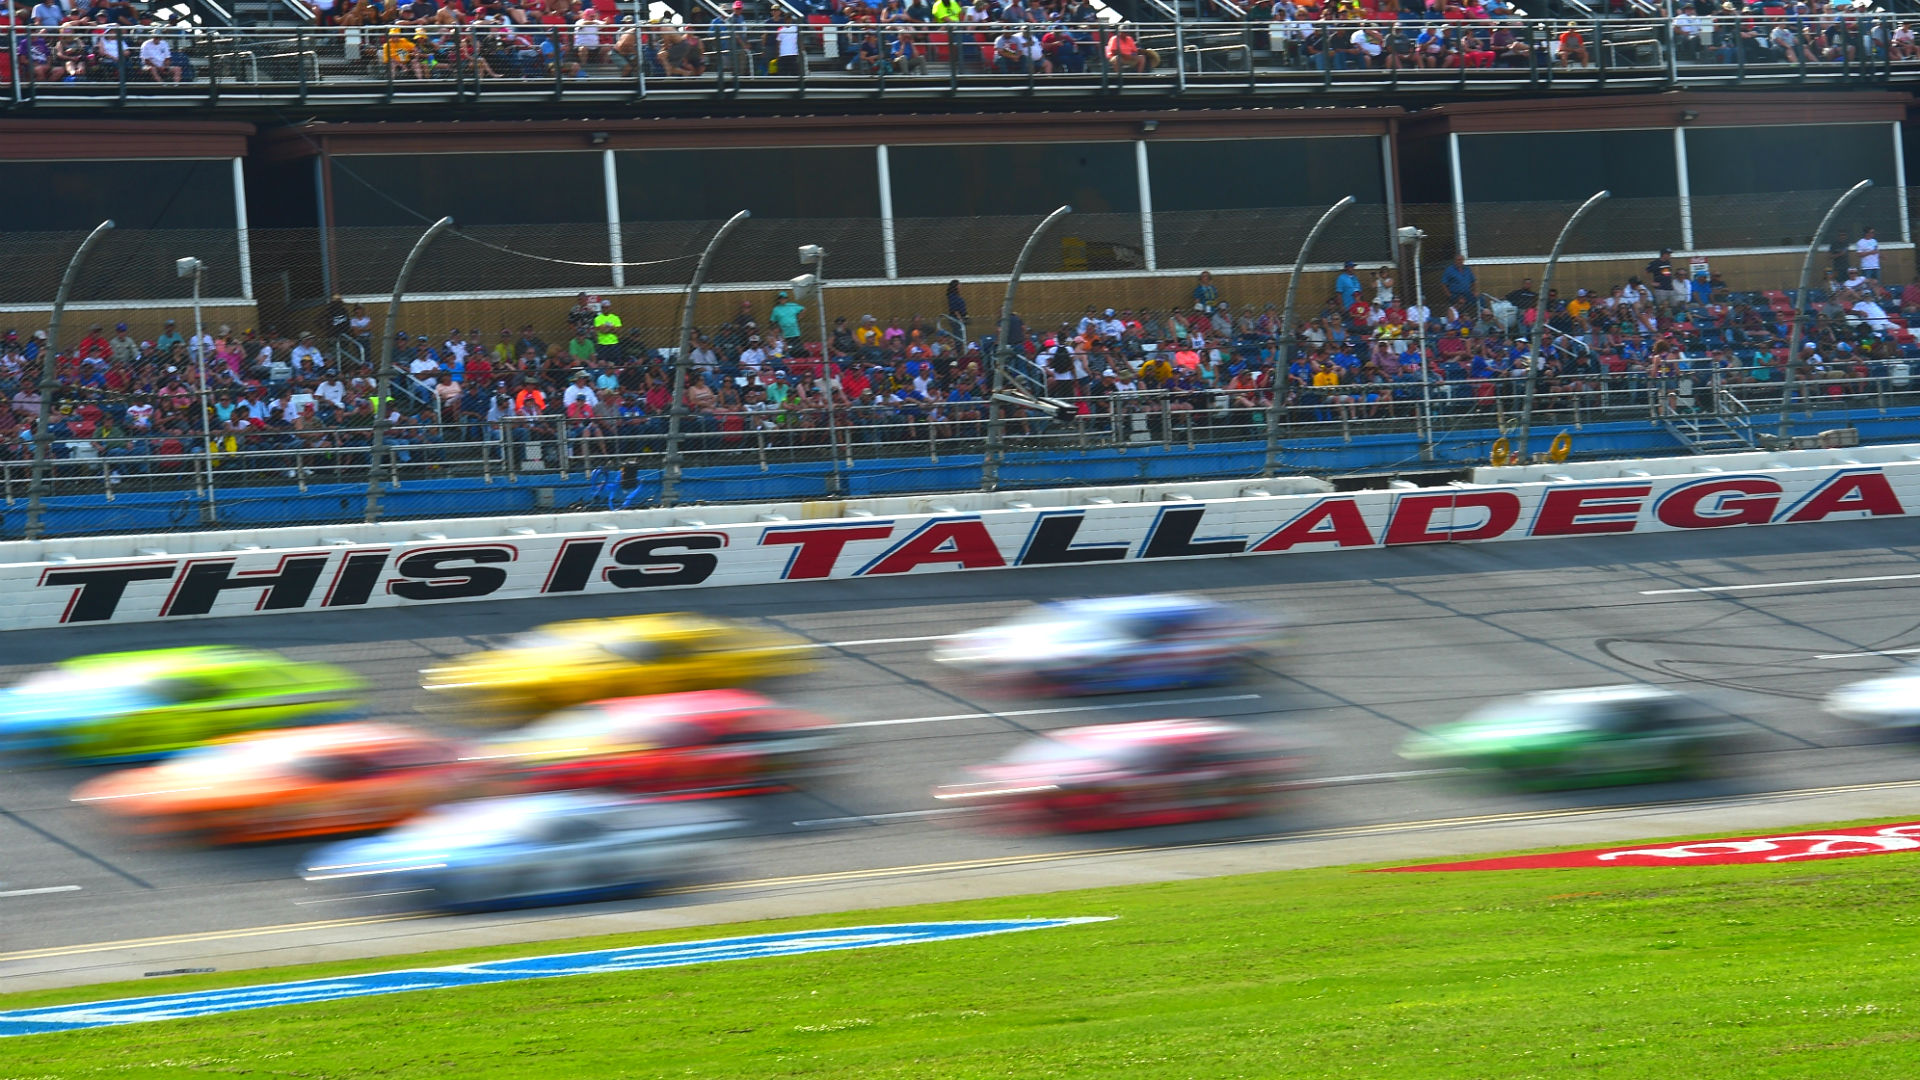 Odds for NASCAR race at Talladega: Expert picks & favorites to win Sunday's Cup Series race